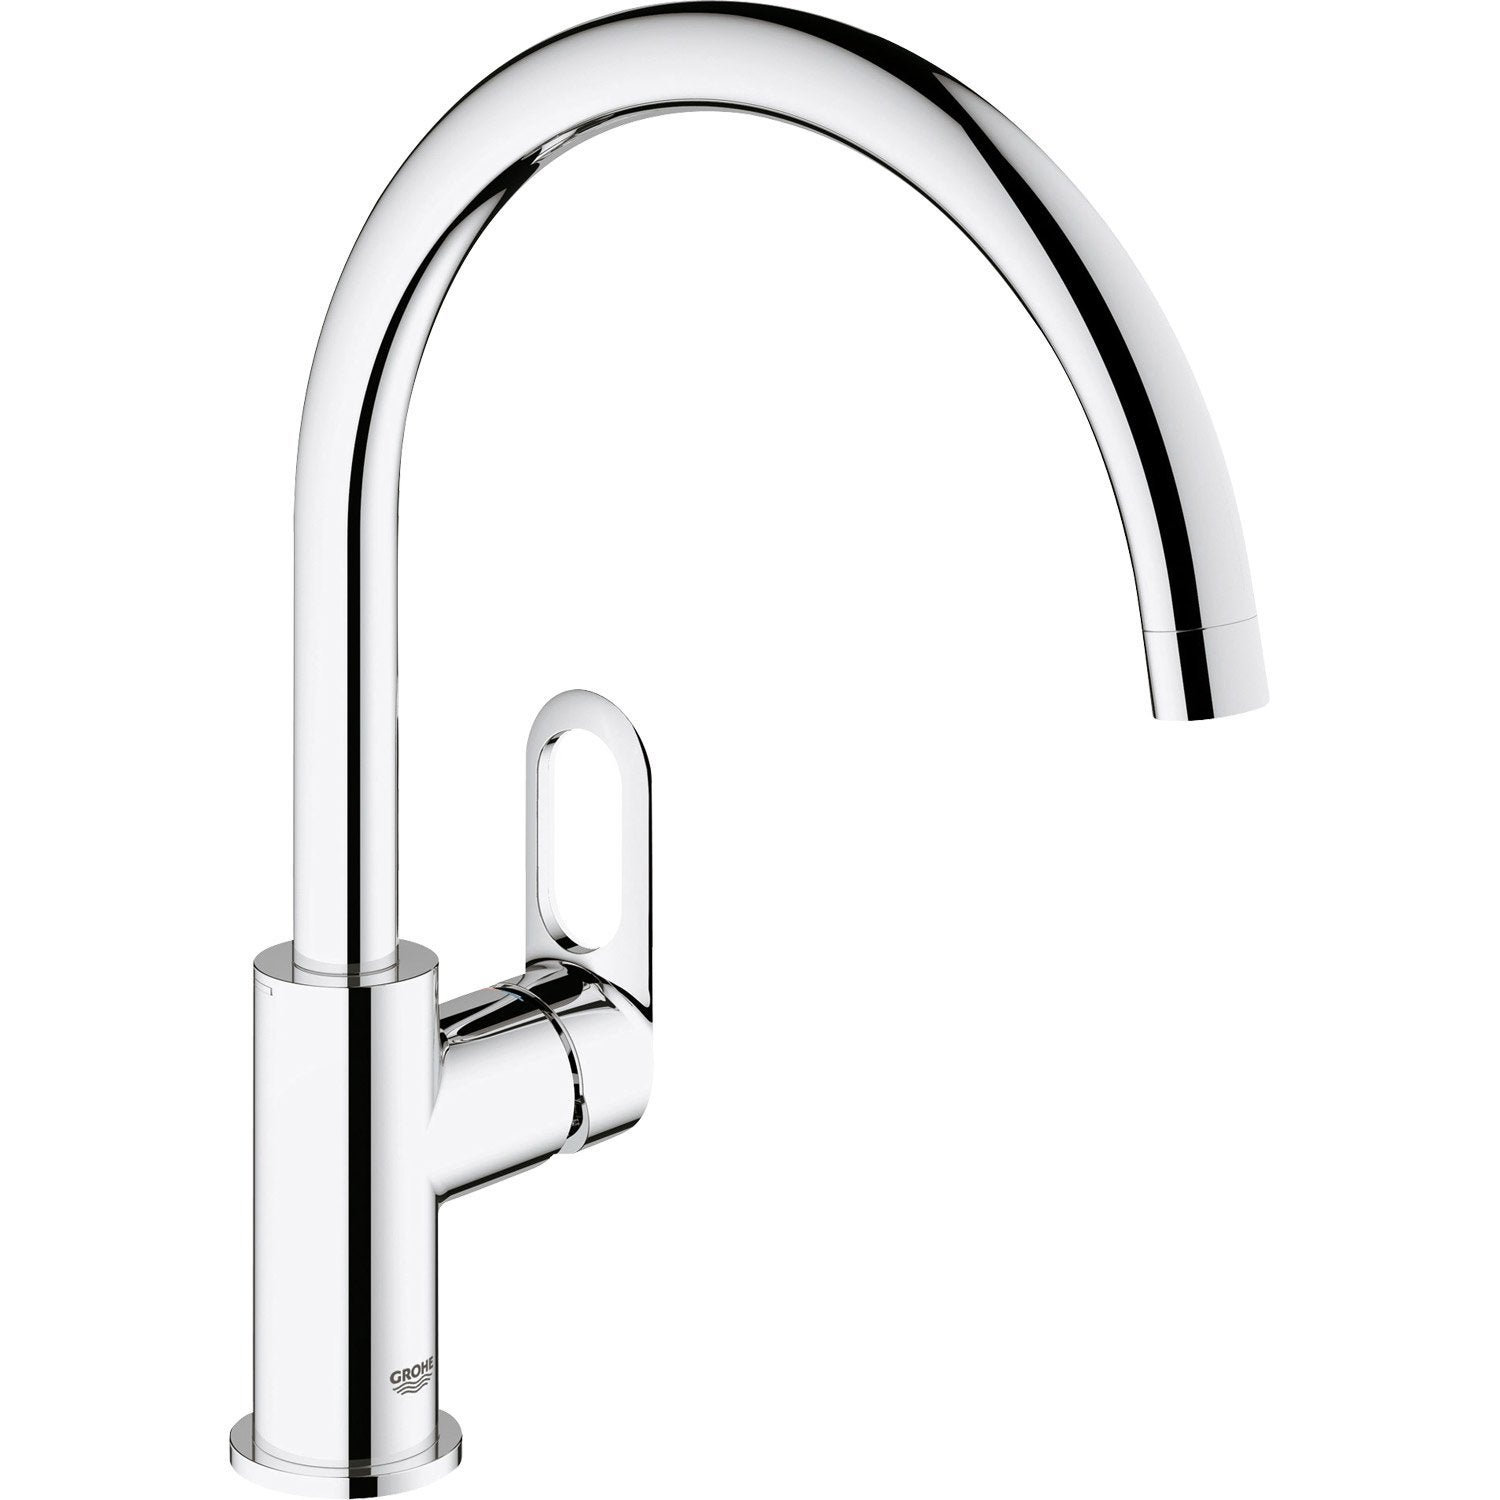 Mitigeur De Cuisine Chrom Grohe Start Loop Leroy Merlin